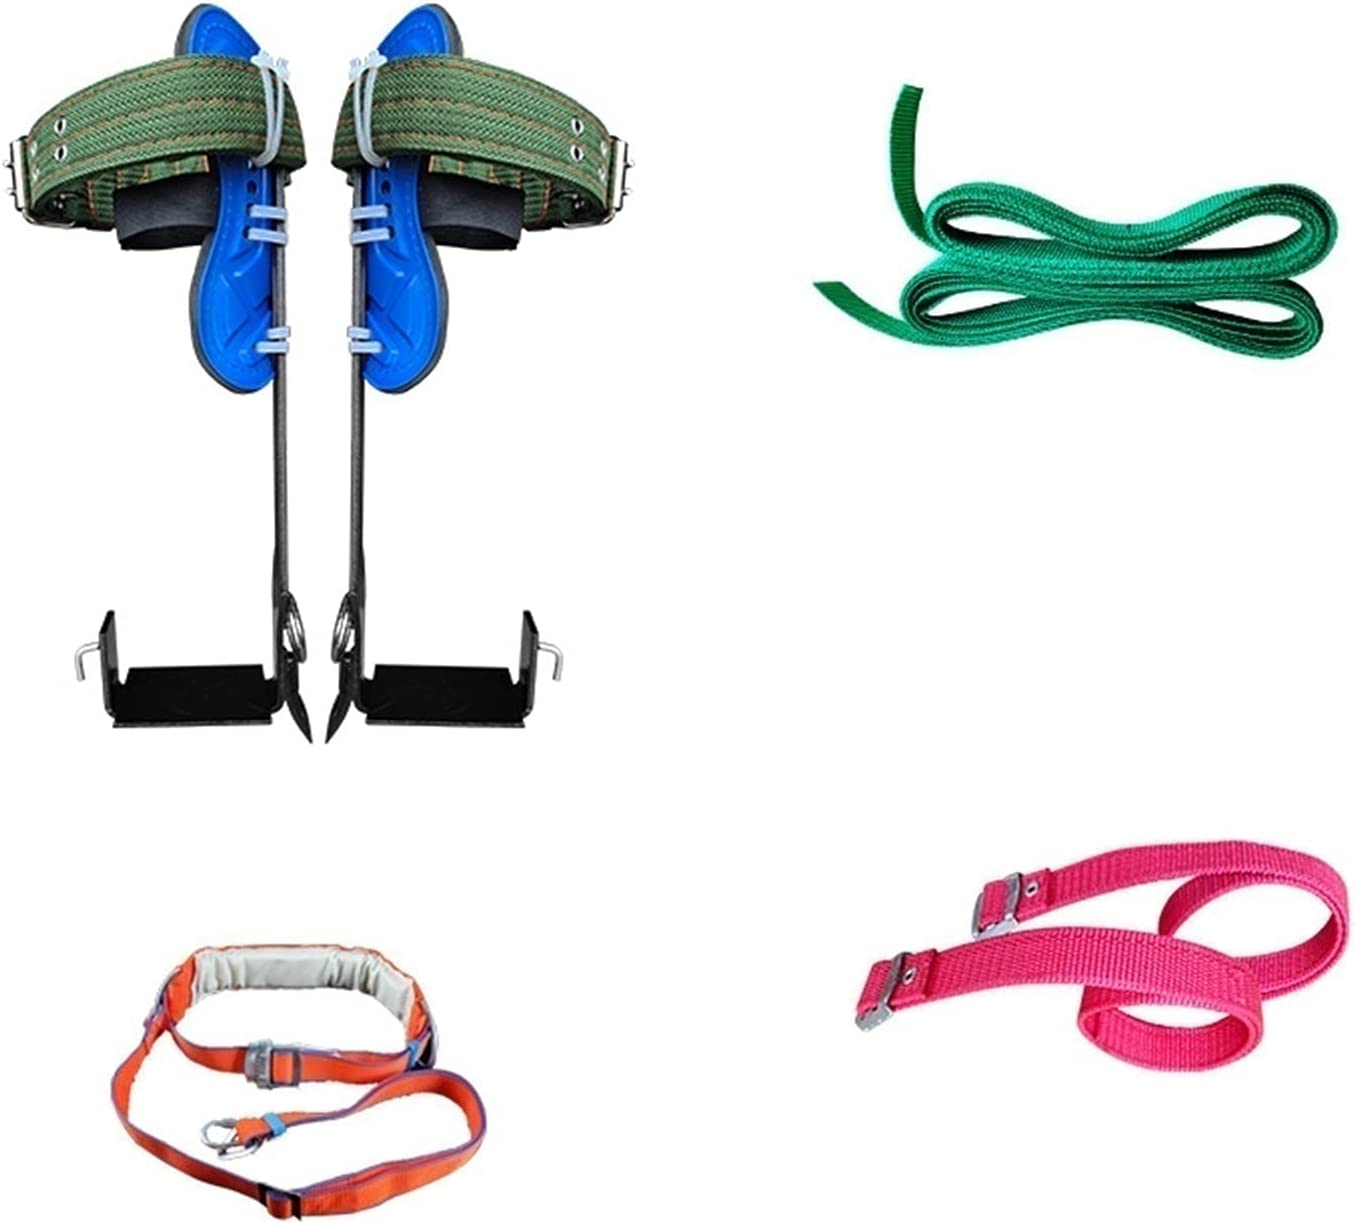 Direct store CRMY Max 50% OFF Climbing Trees Artifact Tree Laptops Tr Crampons